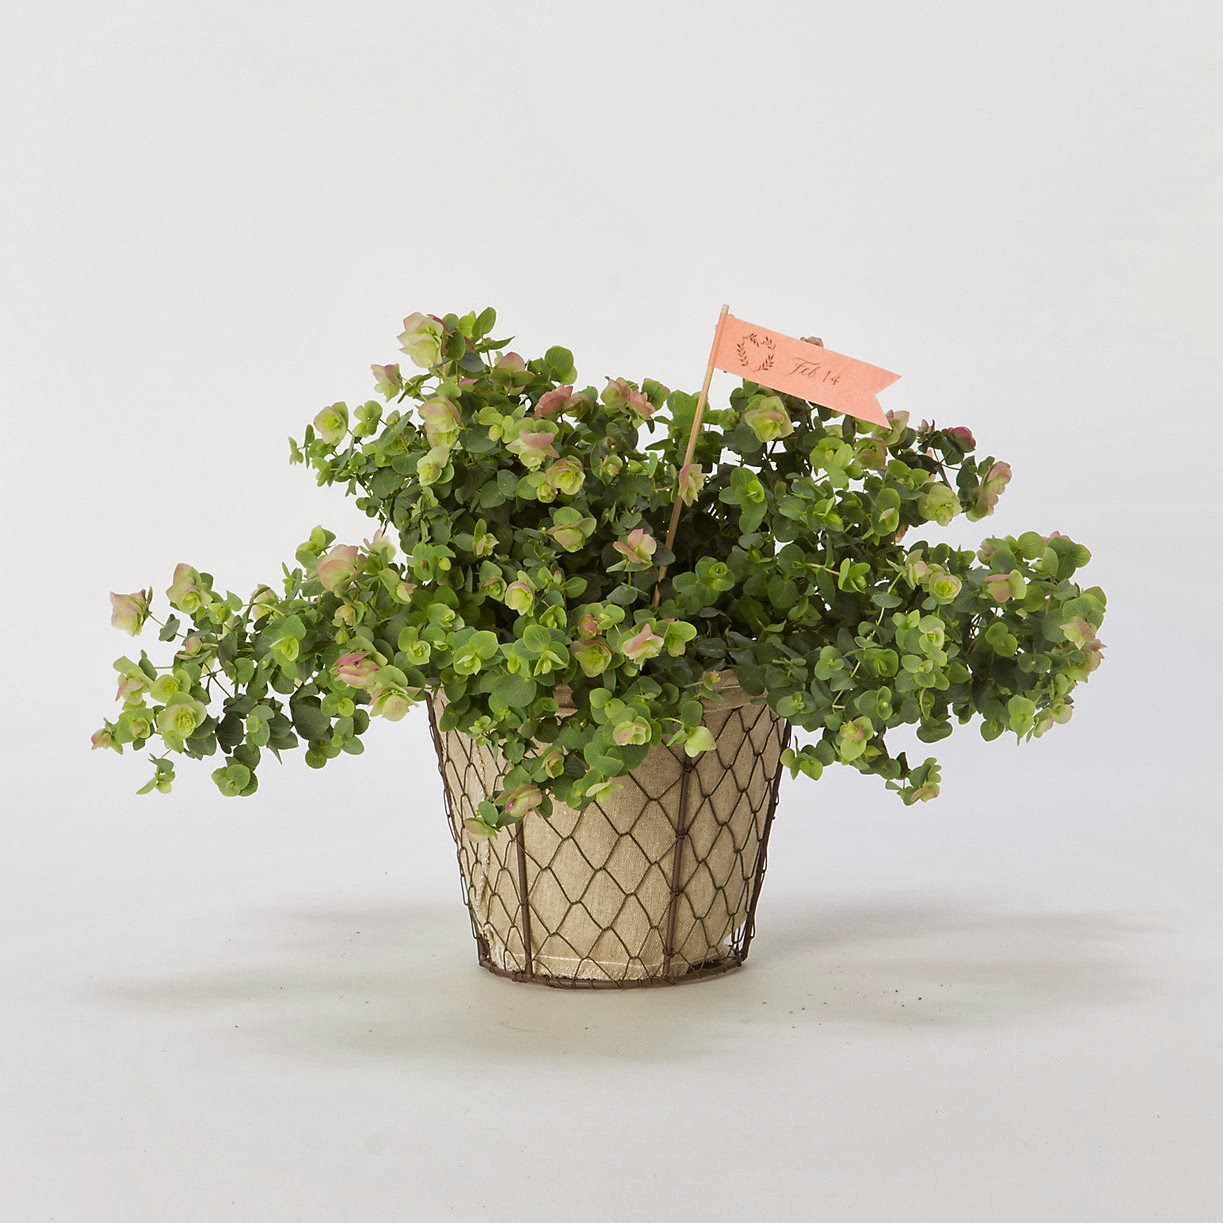 http://www.shopterrain.com/product/flowering-oregano-plant